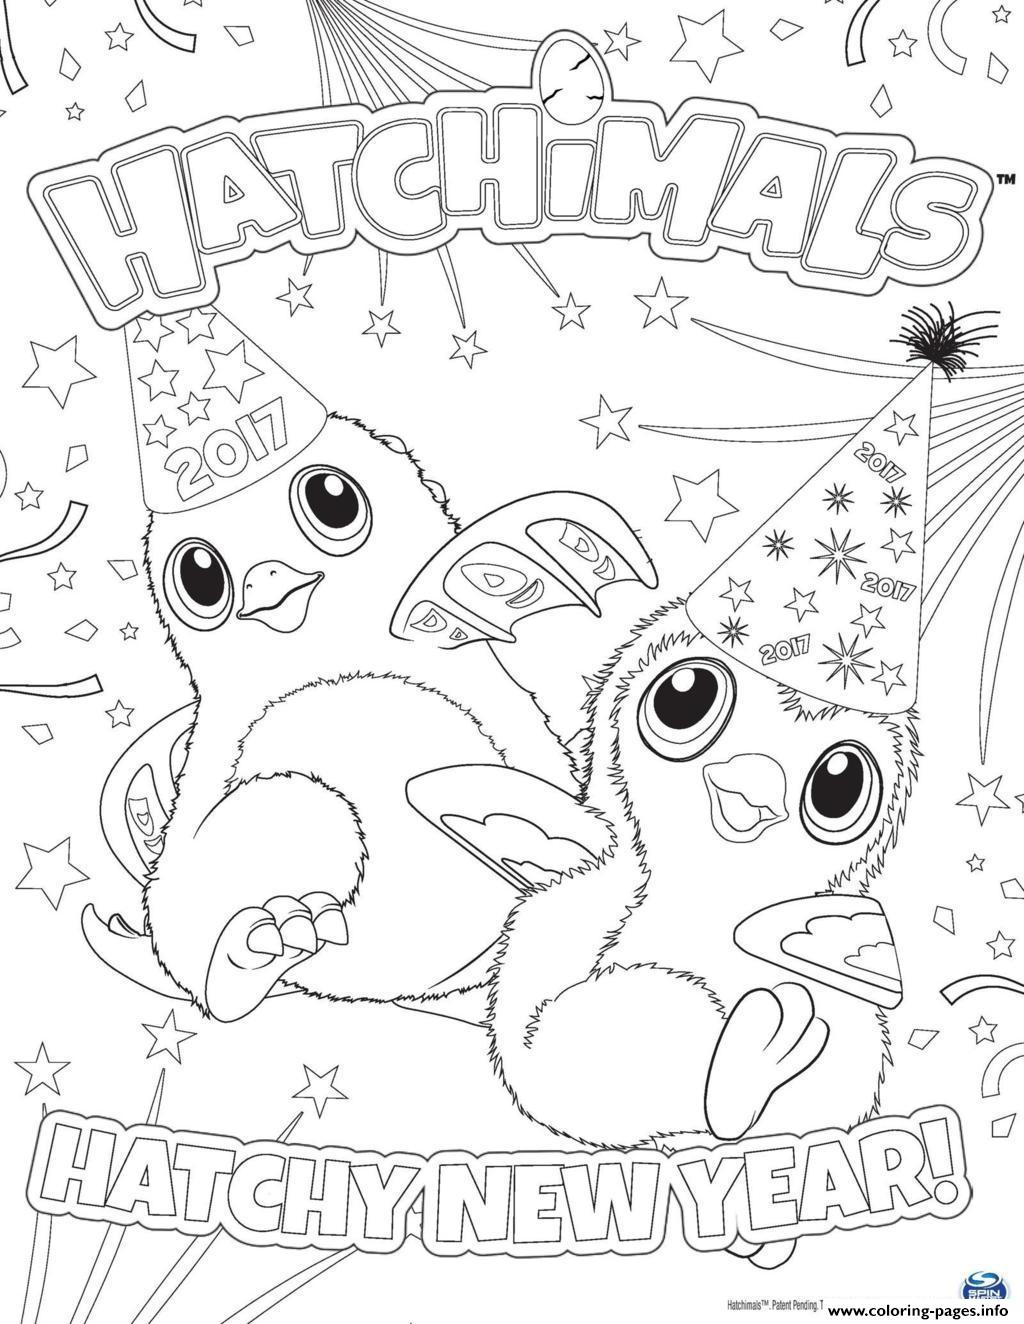 Hatchimals Happy Newyear 2017 Hatchy Coloring Pages